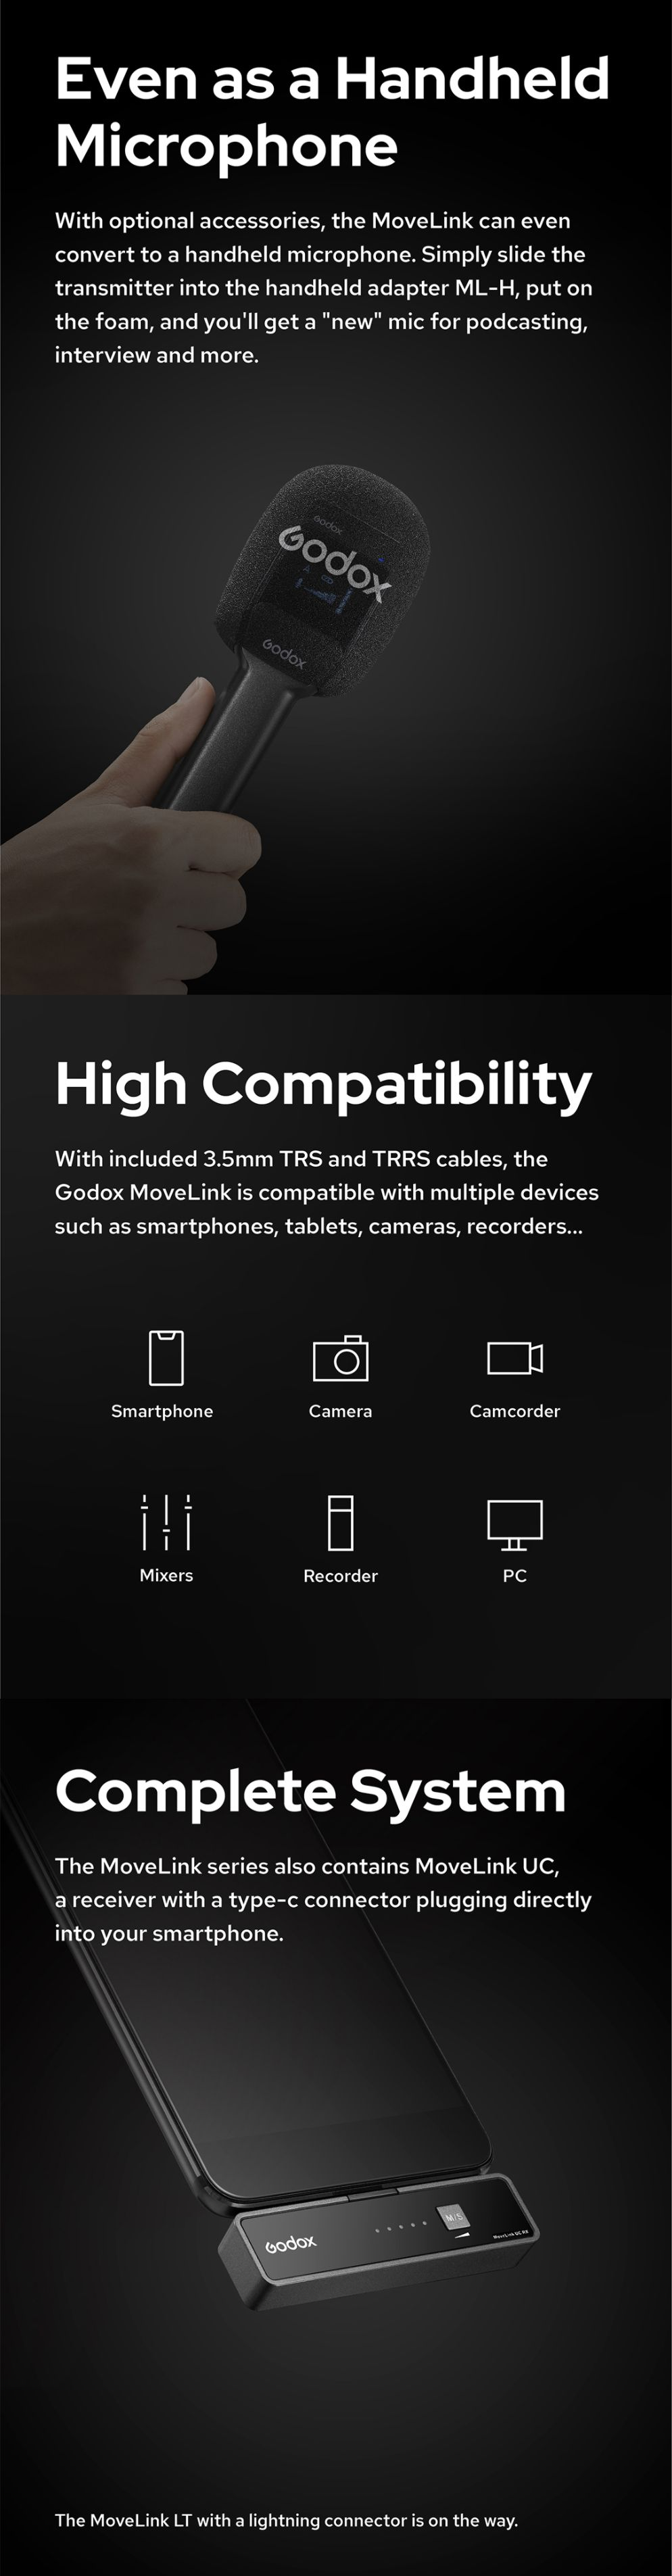 Even as a Handheld Microphone High Compatibility Complete System